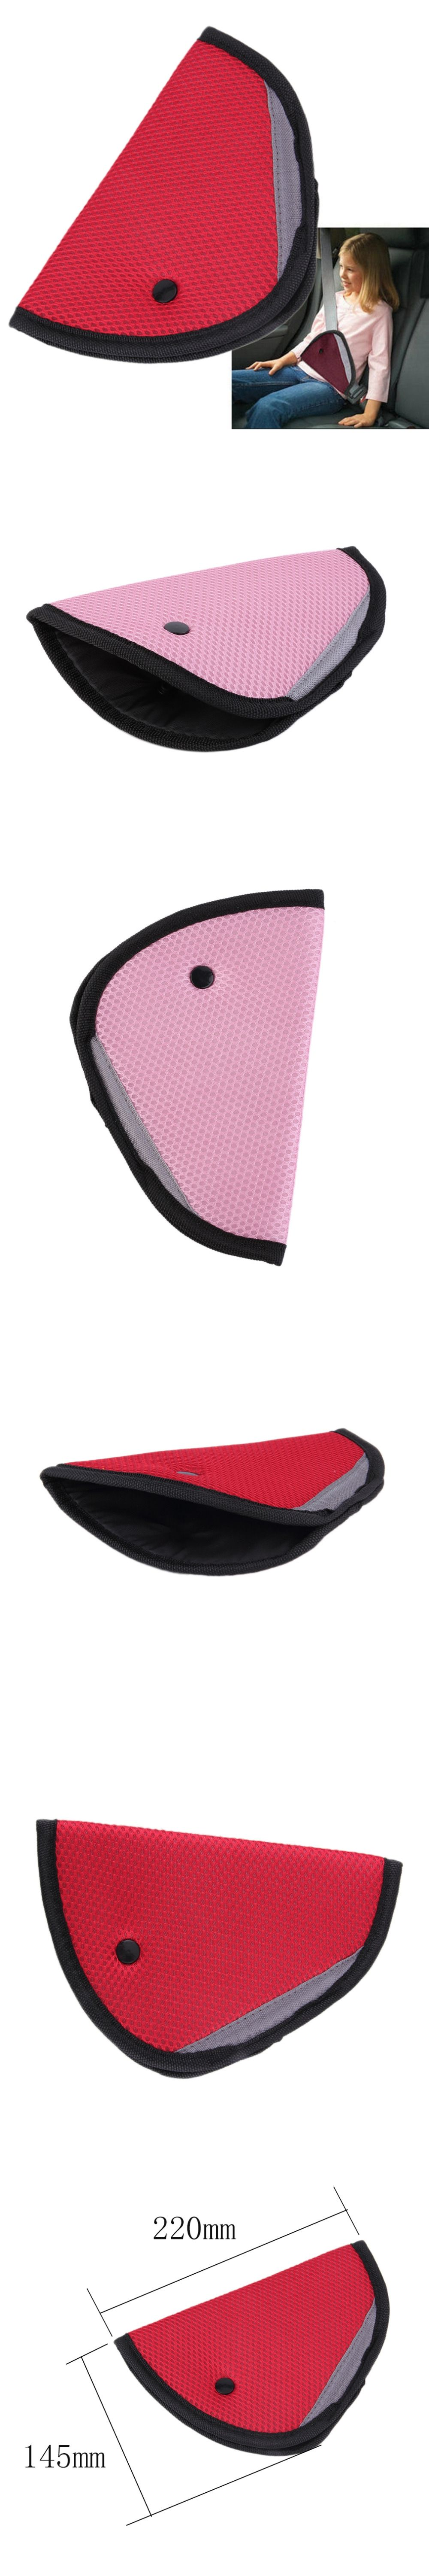 Triangle Child Car Safety Belt Holder Child Resistant seat cover ...